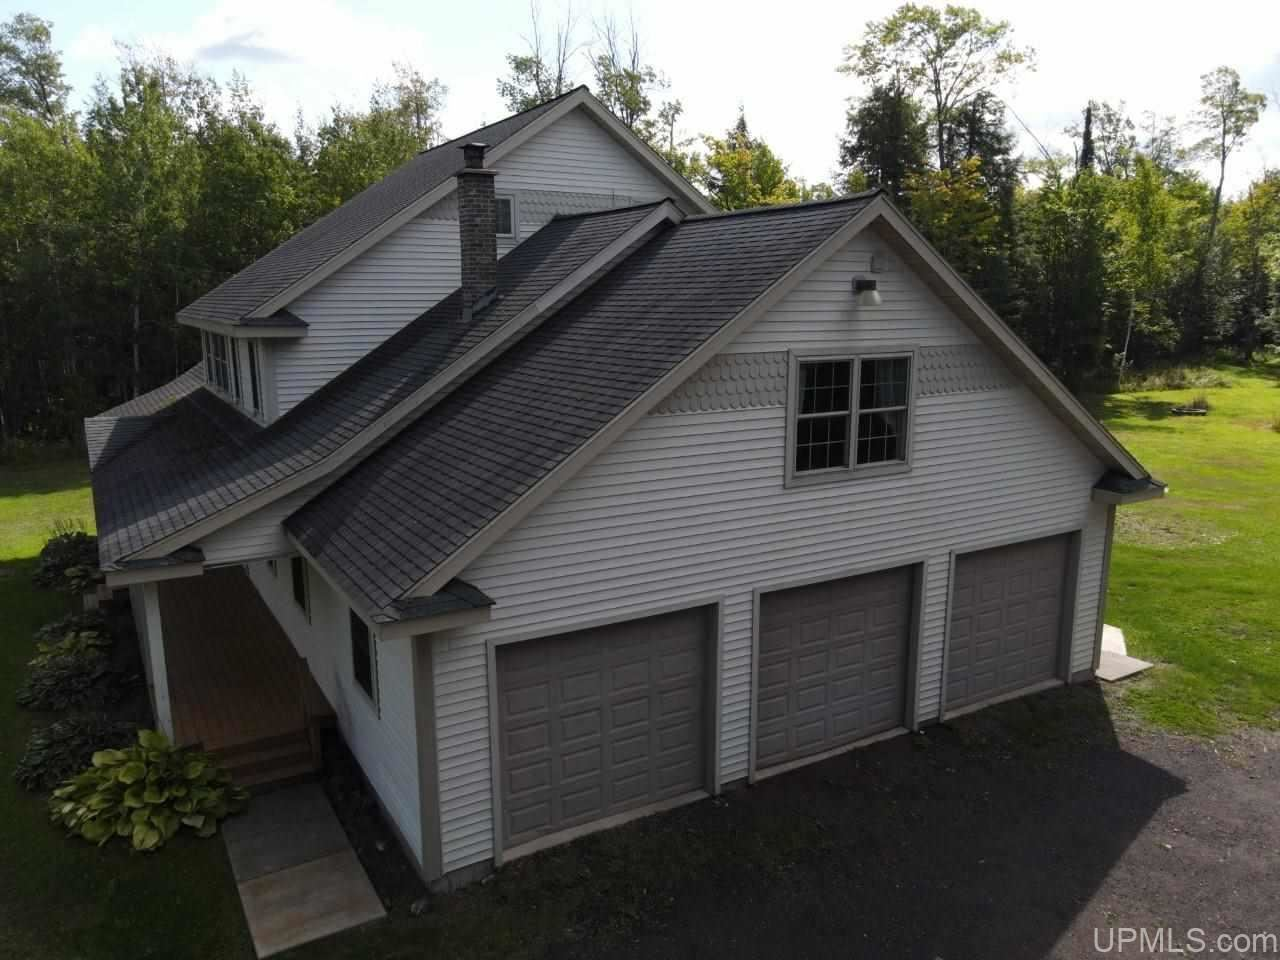 Photo of 40947 N Entry, Chassell, MI 49916 (MLS # 1128000)